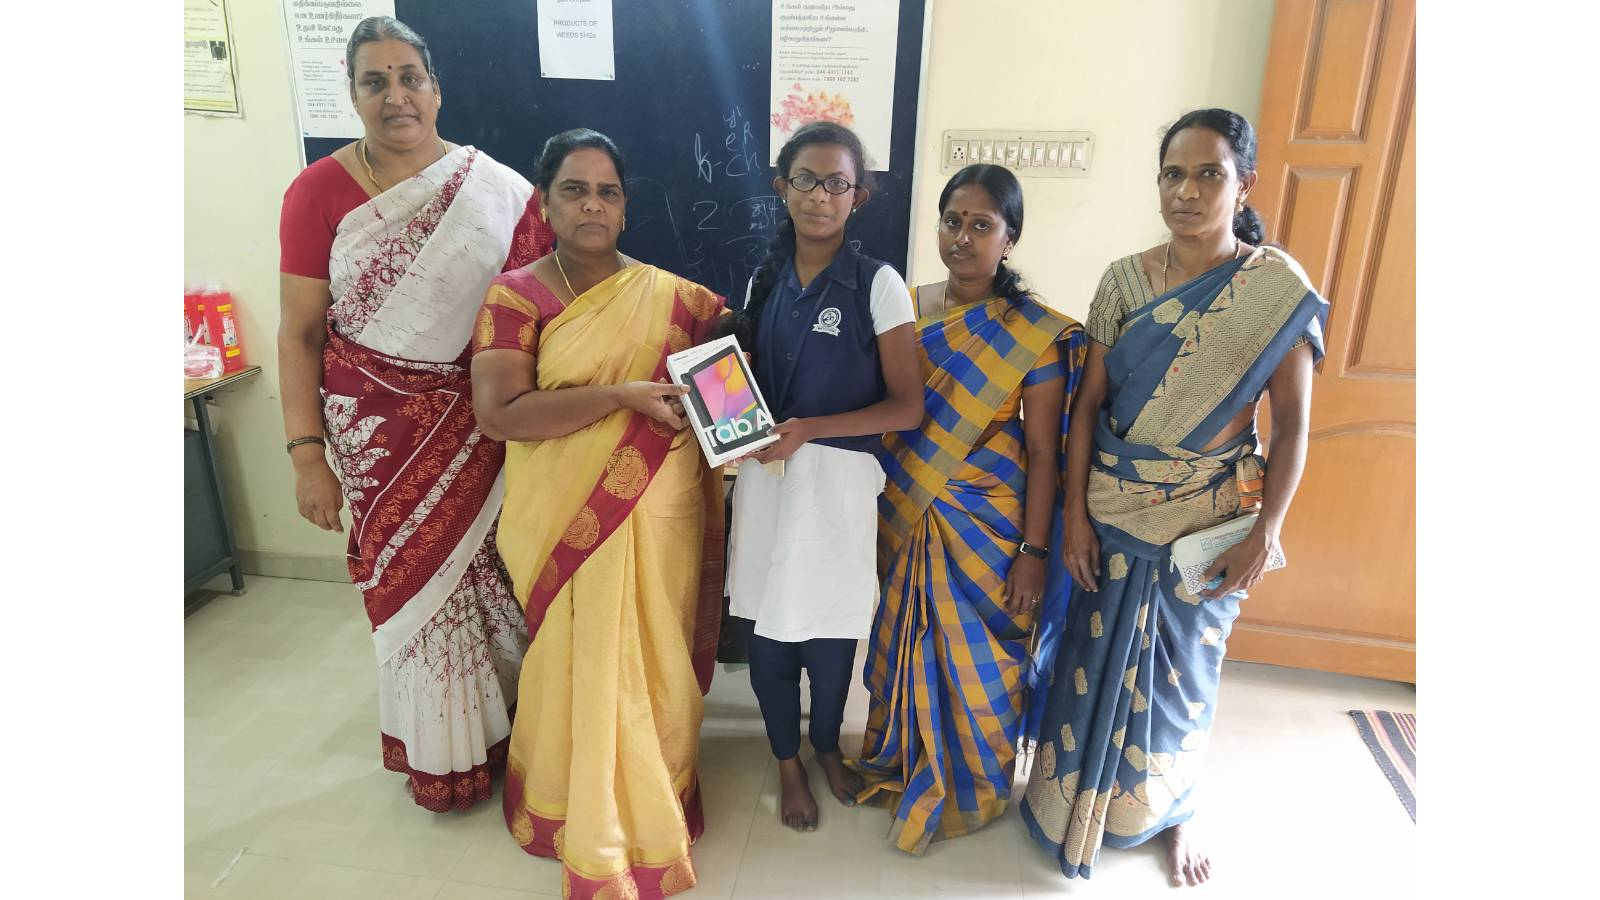 EDUCATIONAL SUPPORT TO STUDENTS FROM LOW INCOME FAMILIES